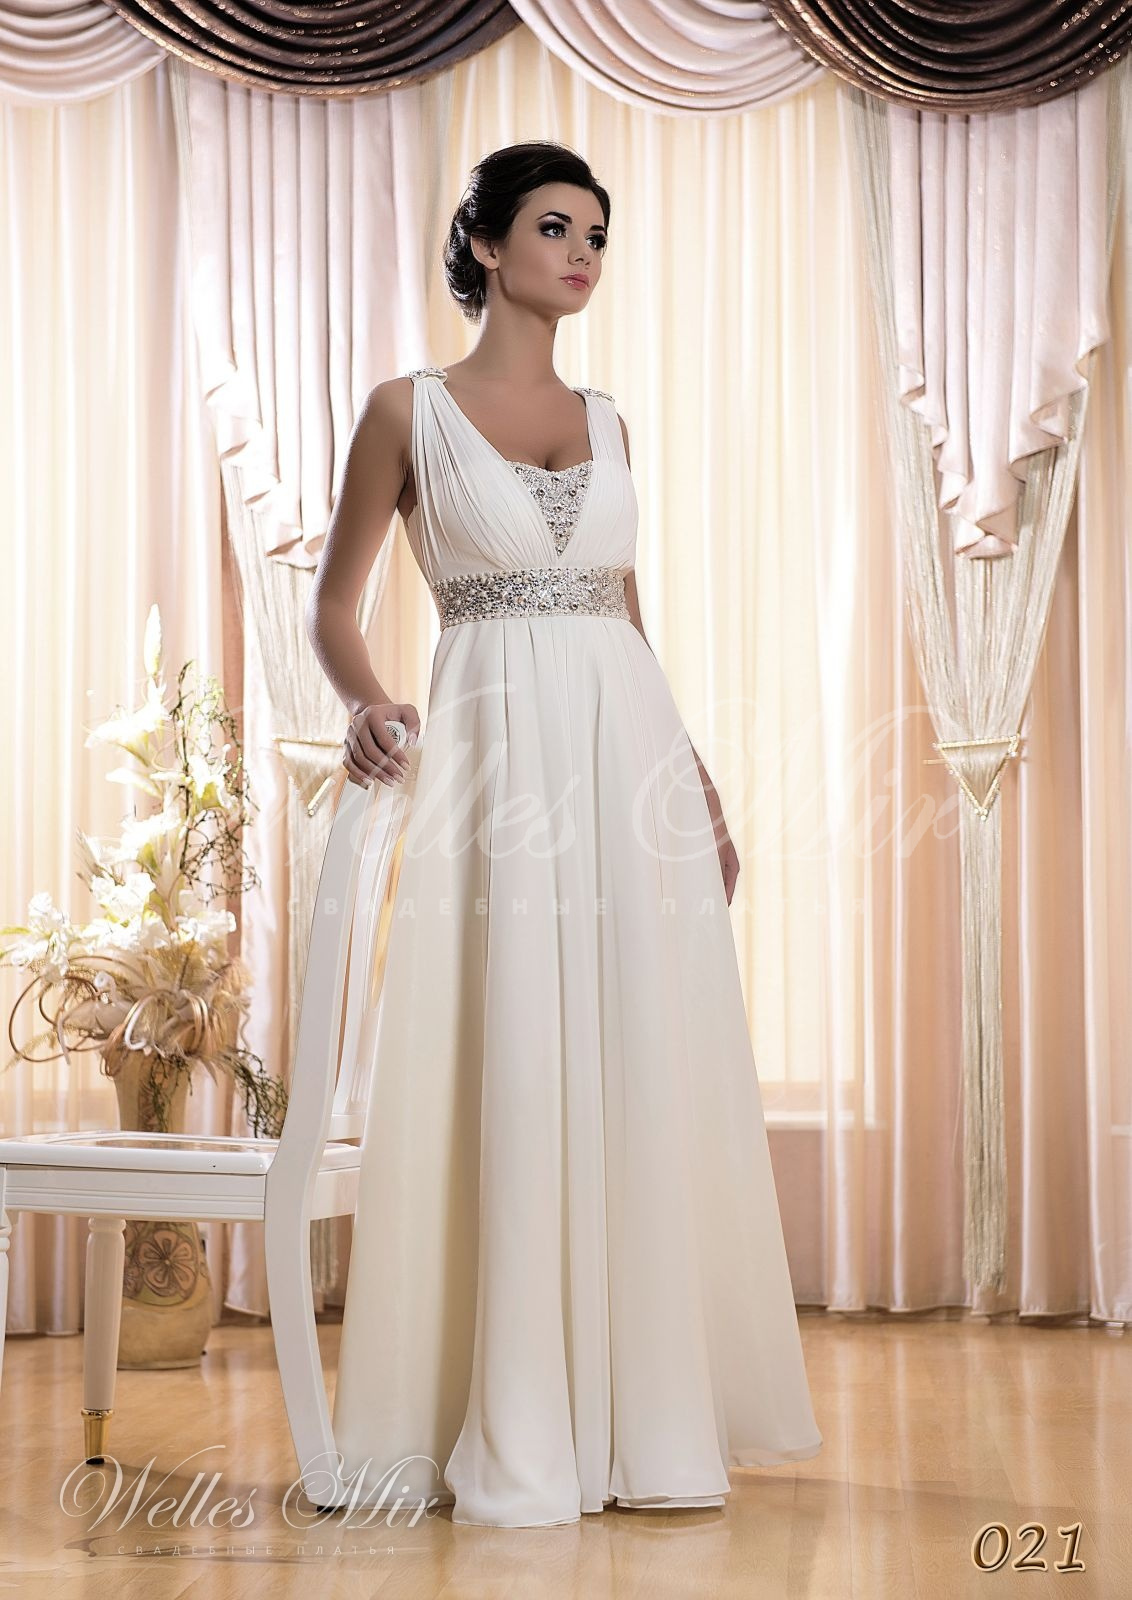 Wedding dresses 021